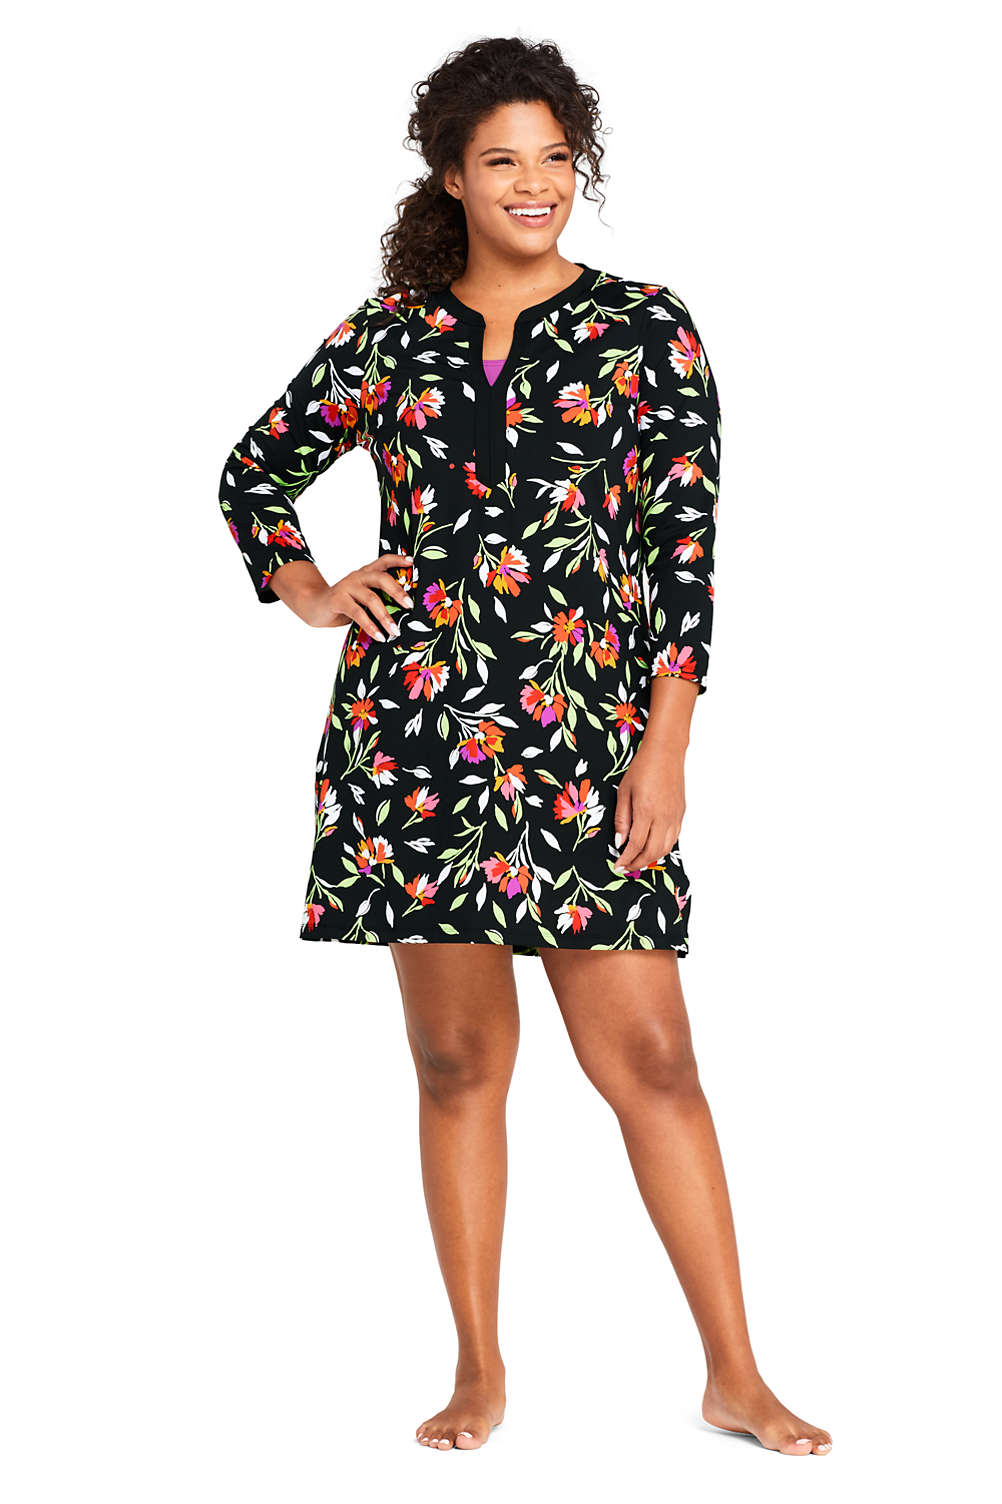 679d8b88a0308 Women s Plus Size Swim Cover-up Tunic Dress with UV Protection Print from  Lands  End